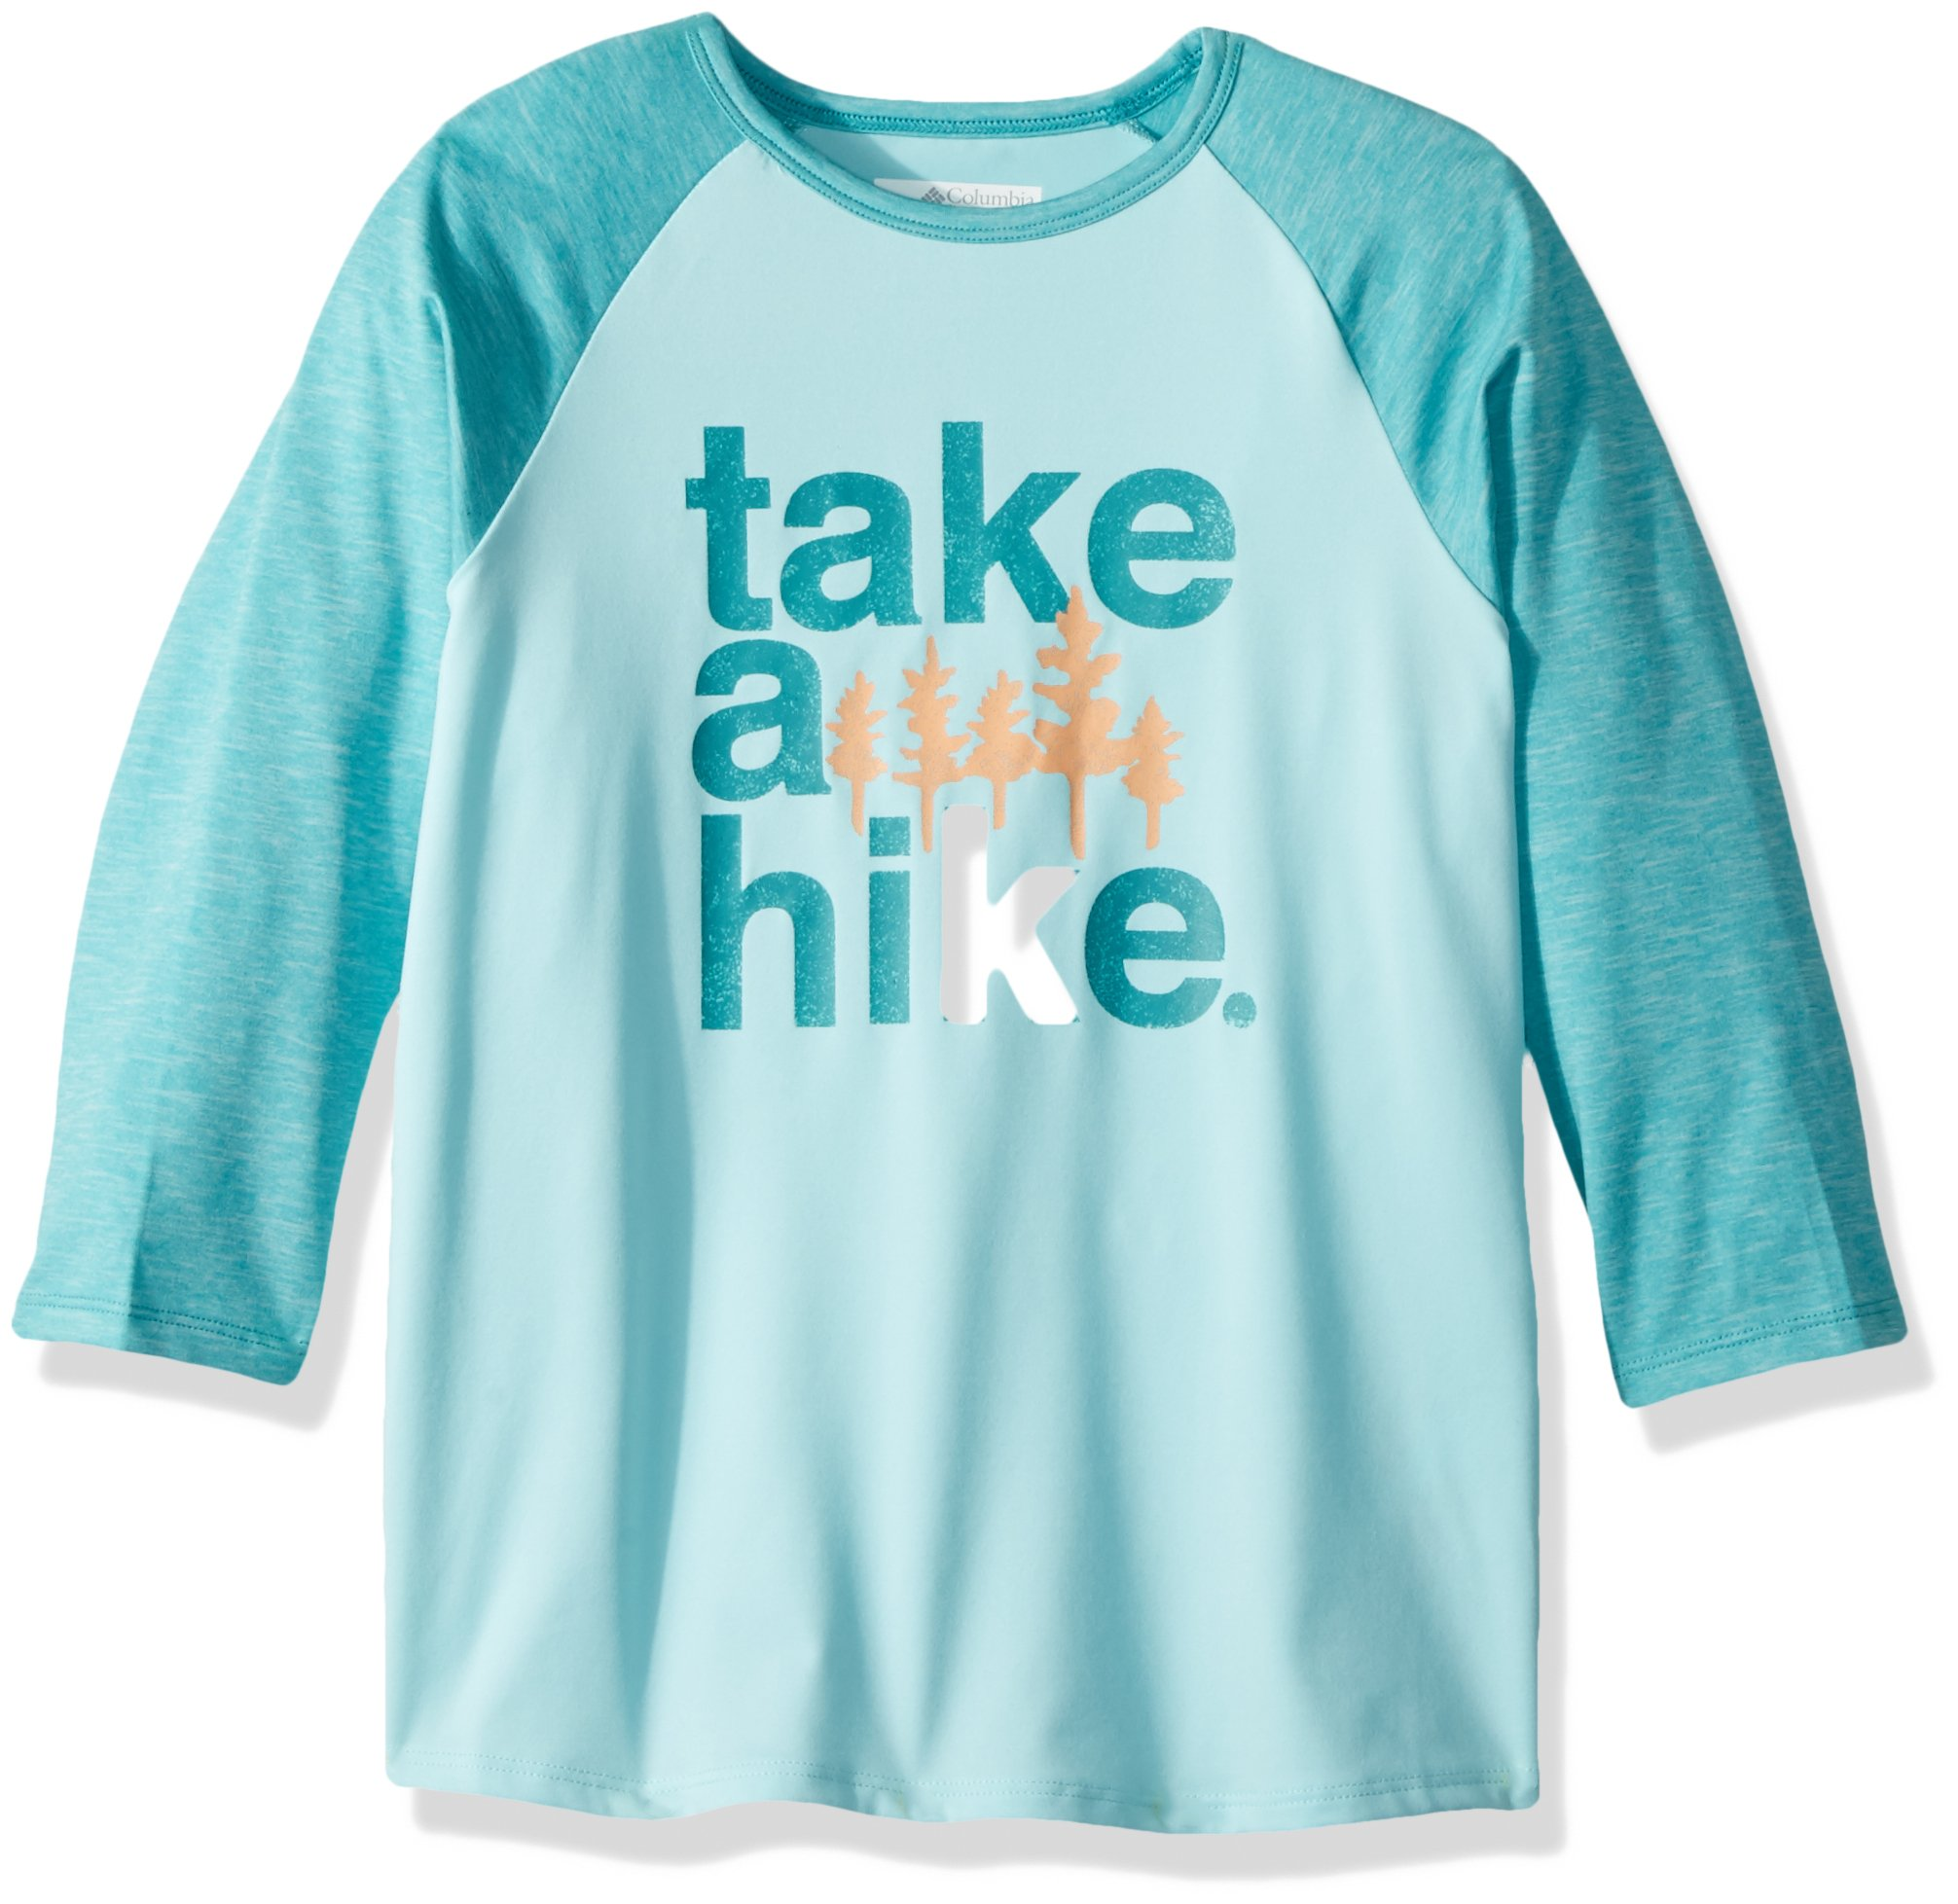 Columbia Boys Outdoor Elements3/4 Sleeve Shirt, Candy Mint Hike Graphic, X-Large by Columbia